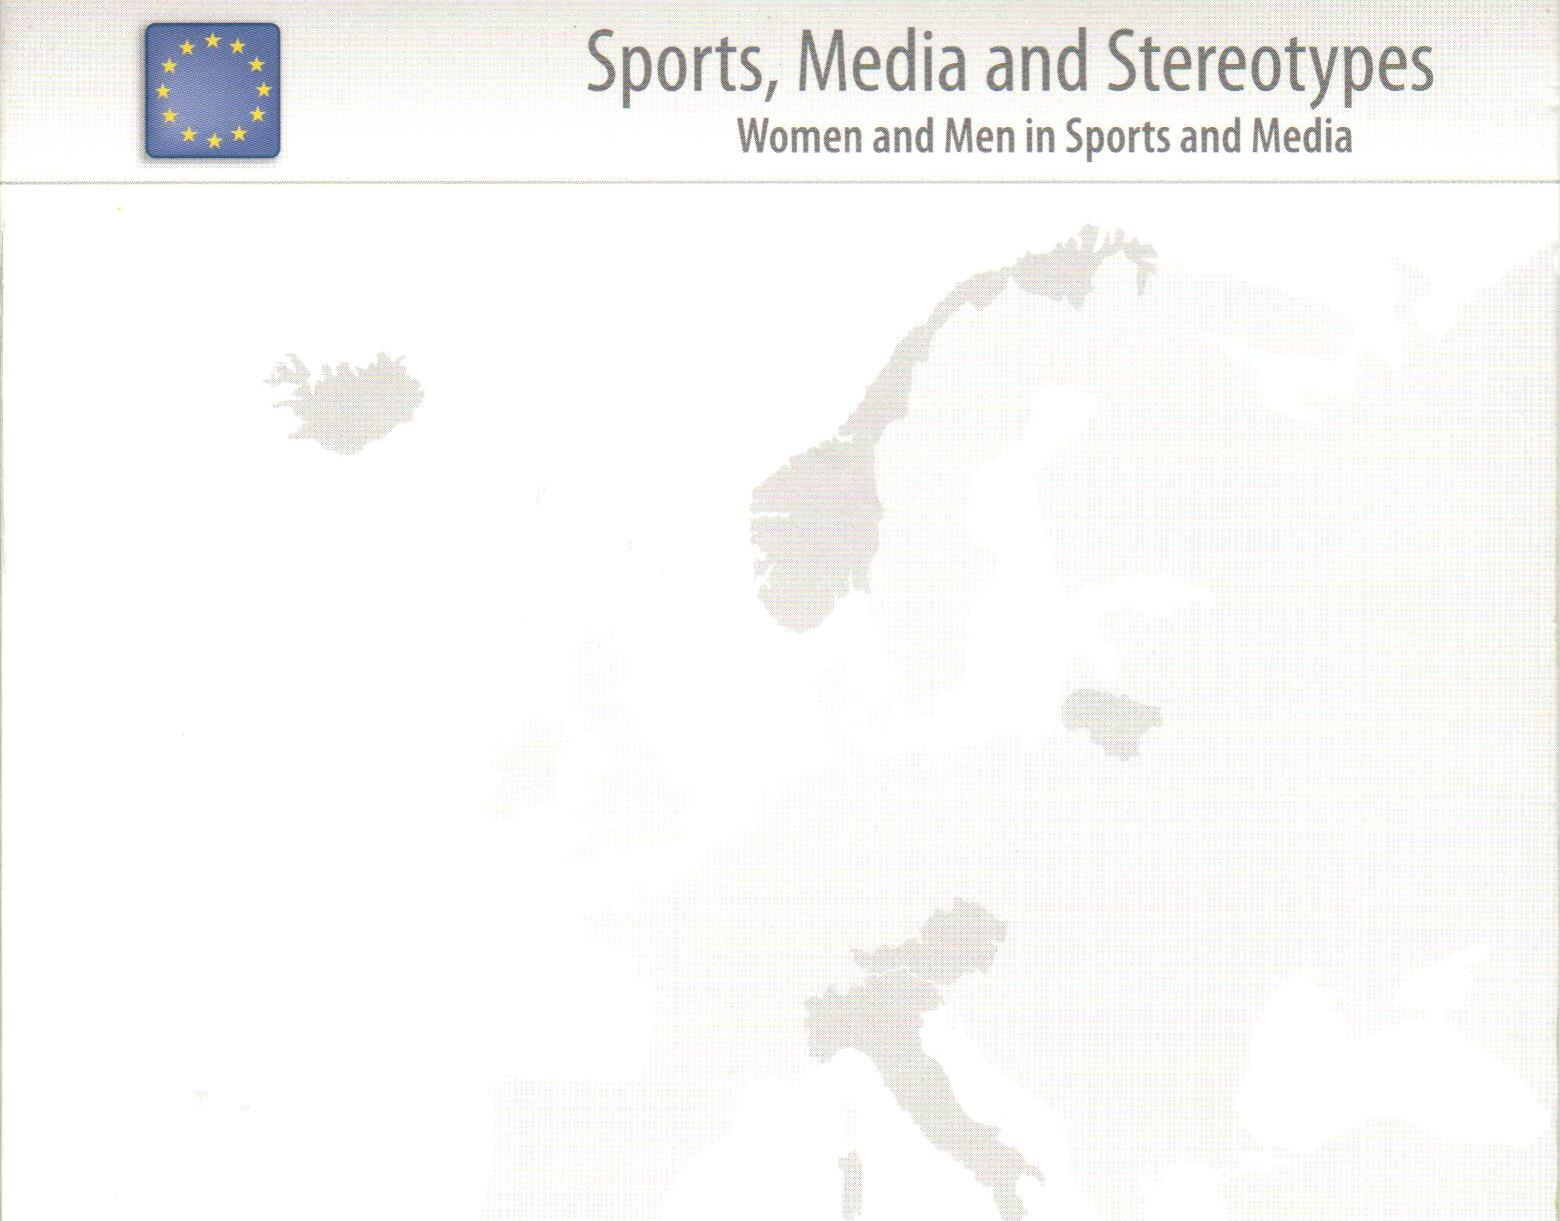 Media and sterotype